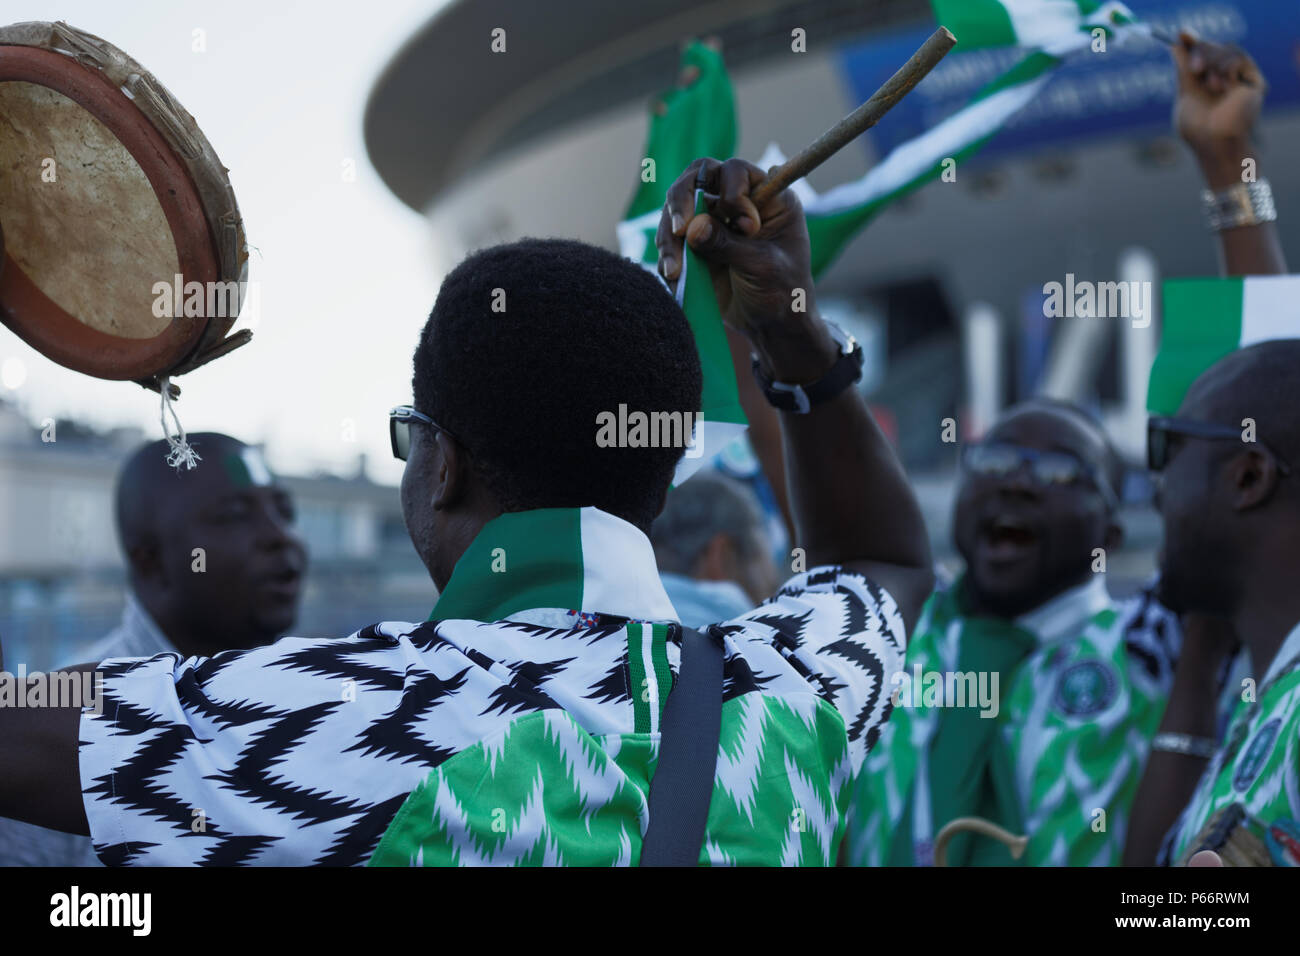 2a4cb5283058 St. Petersburg, Russia - June 26, 2018: Nigerian football fans with  tambourine